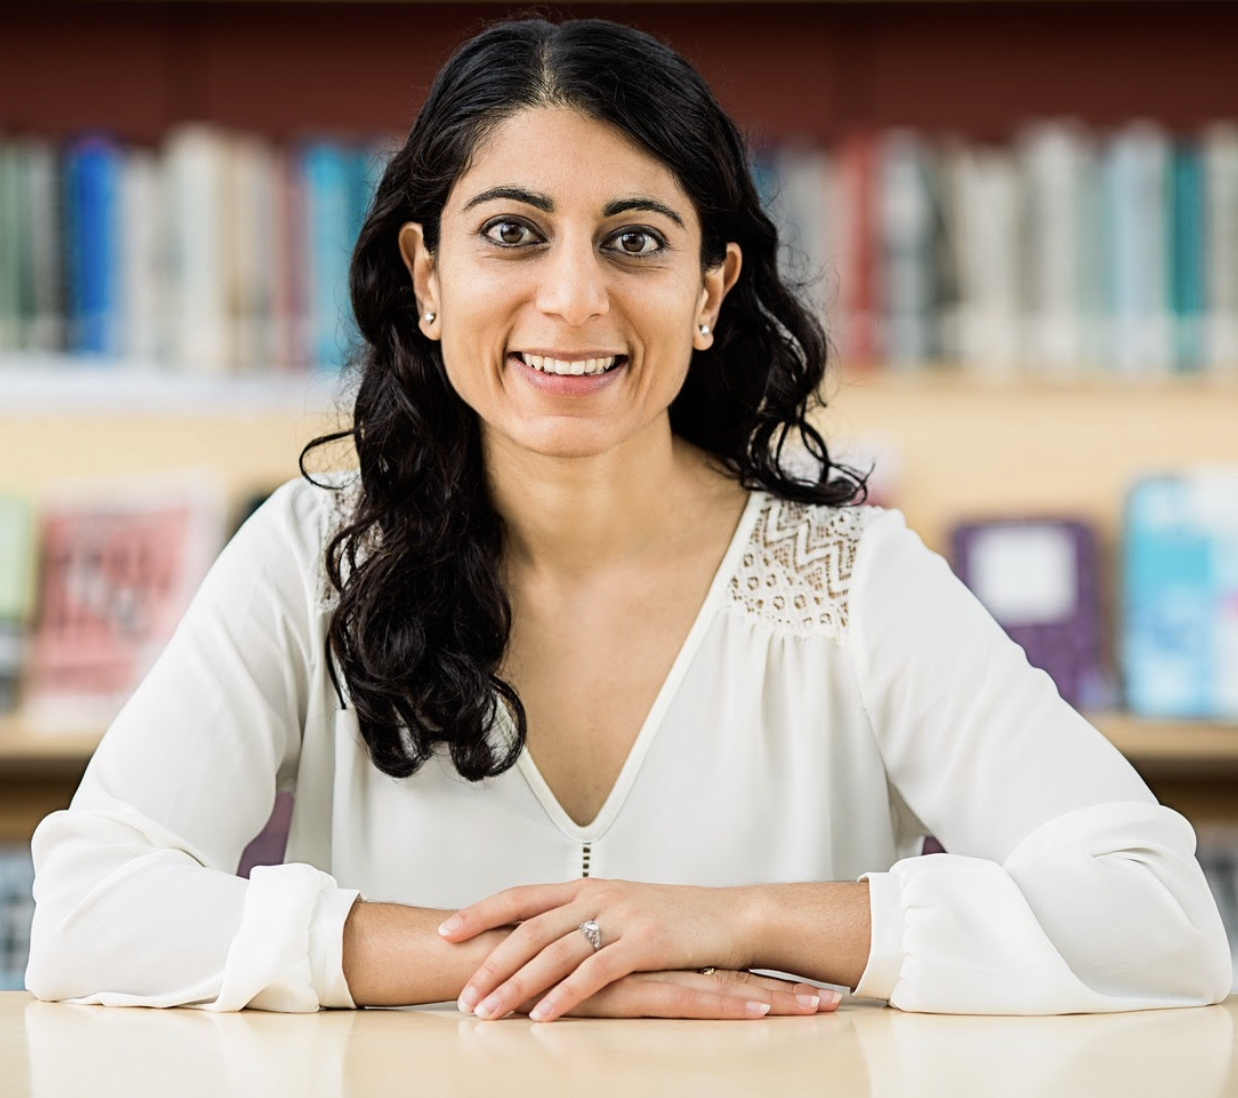 Woman with dark curly hair, white shirt, smiling, books in the background